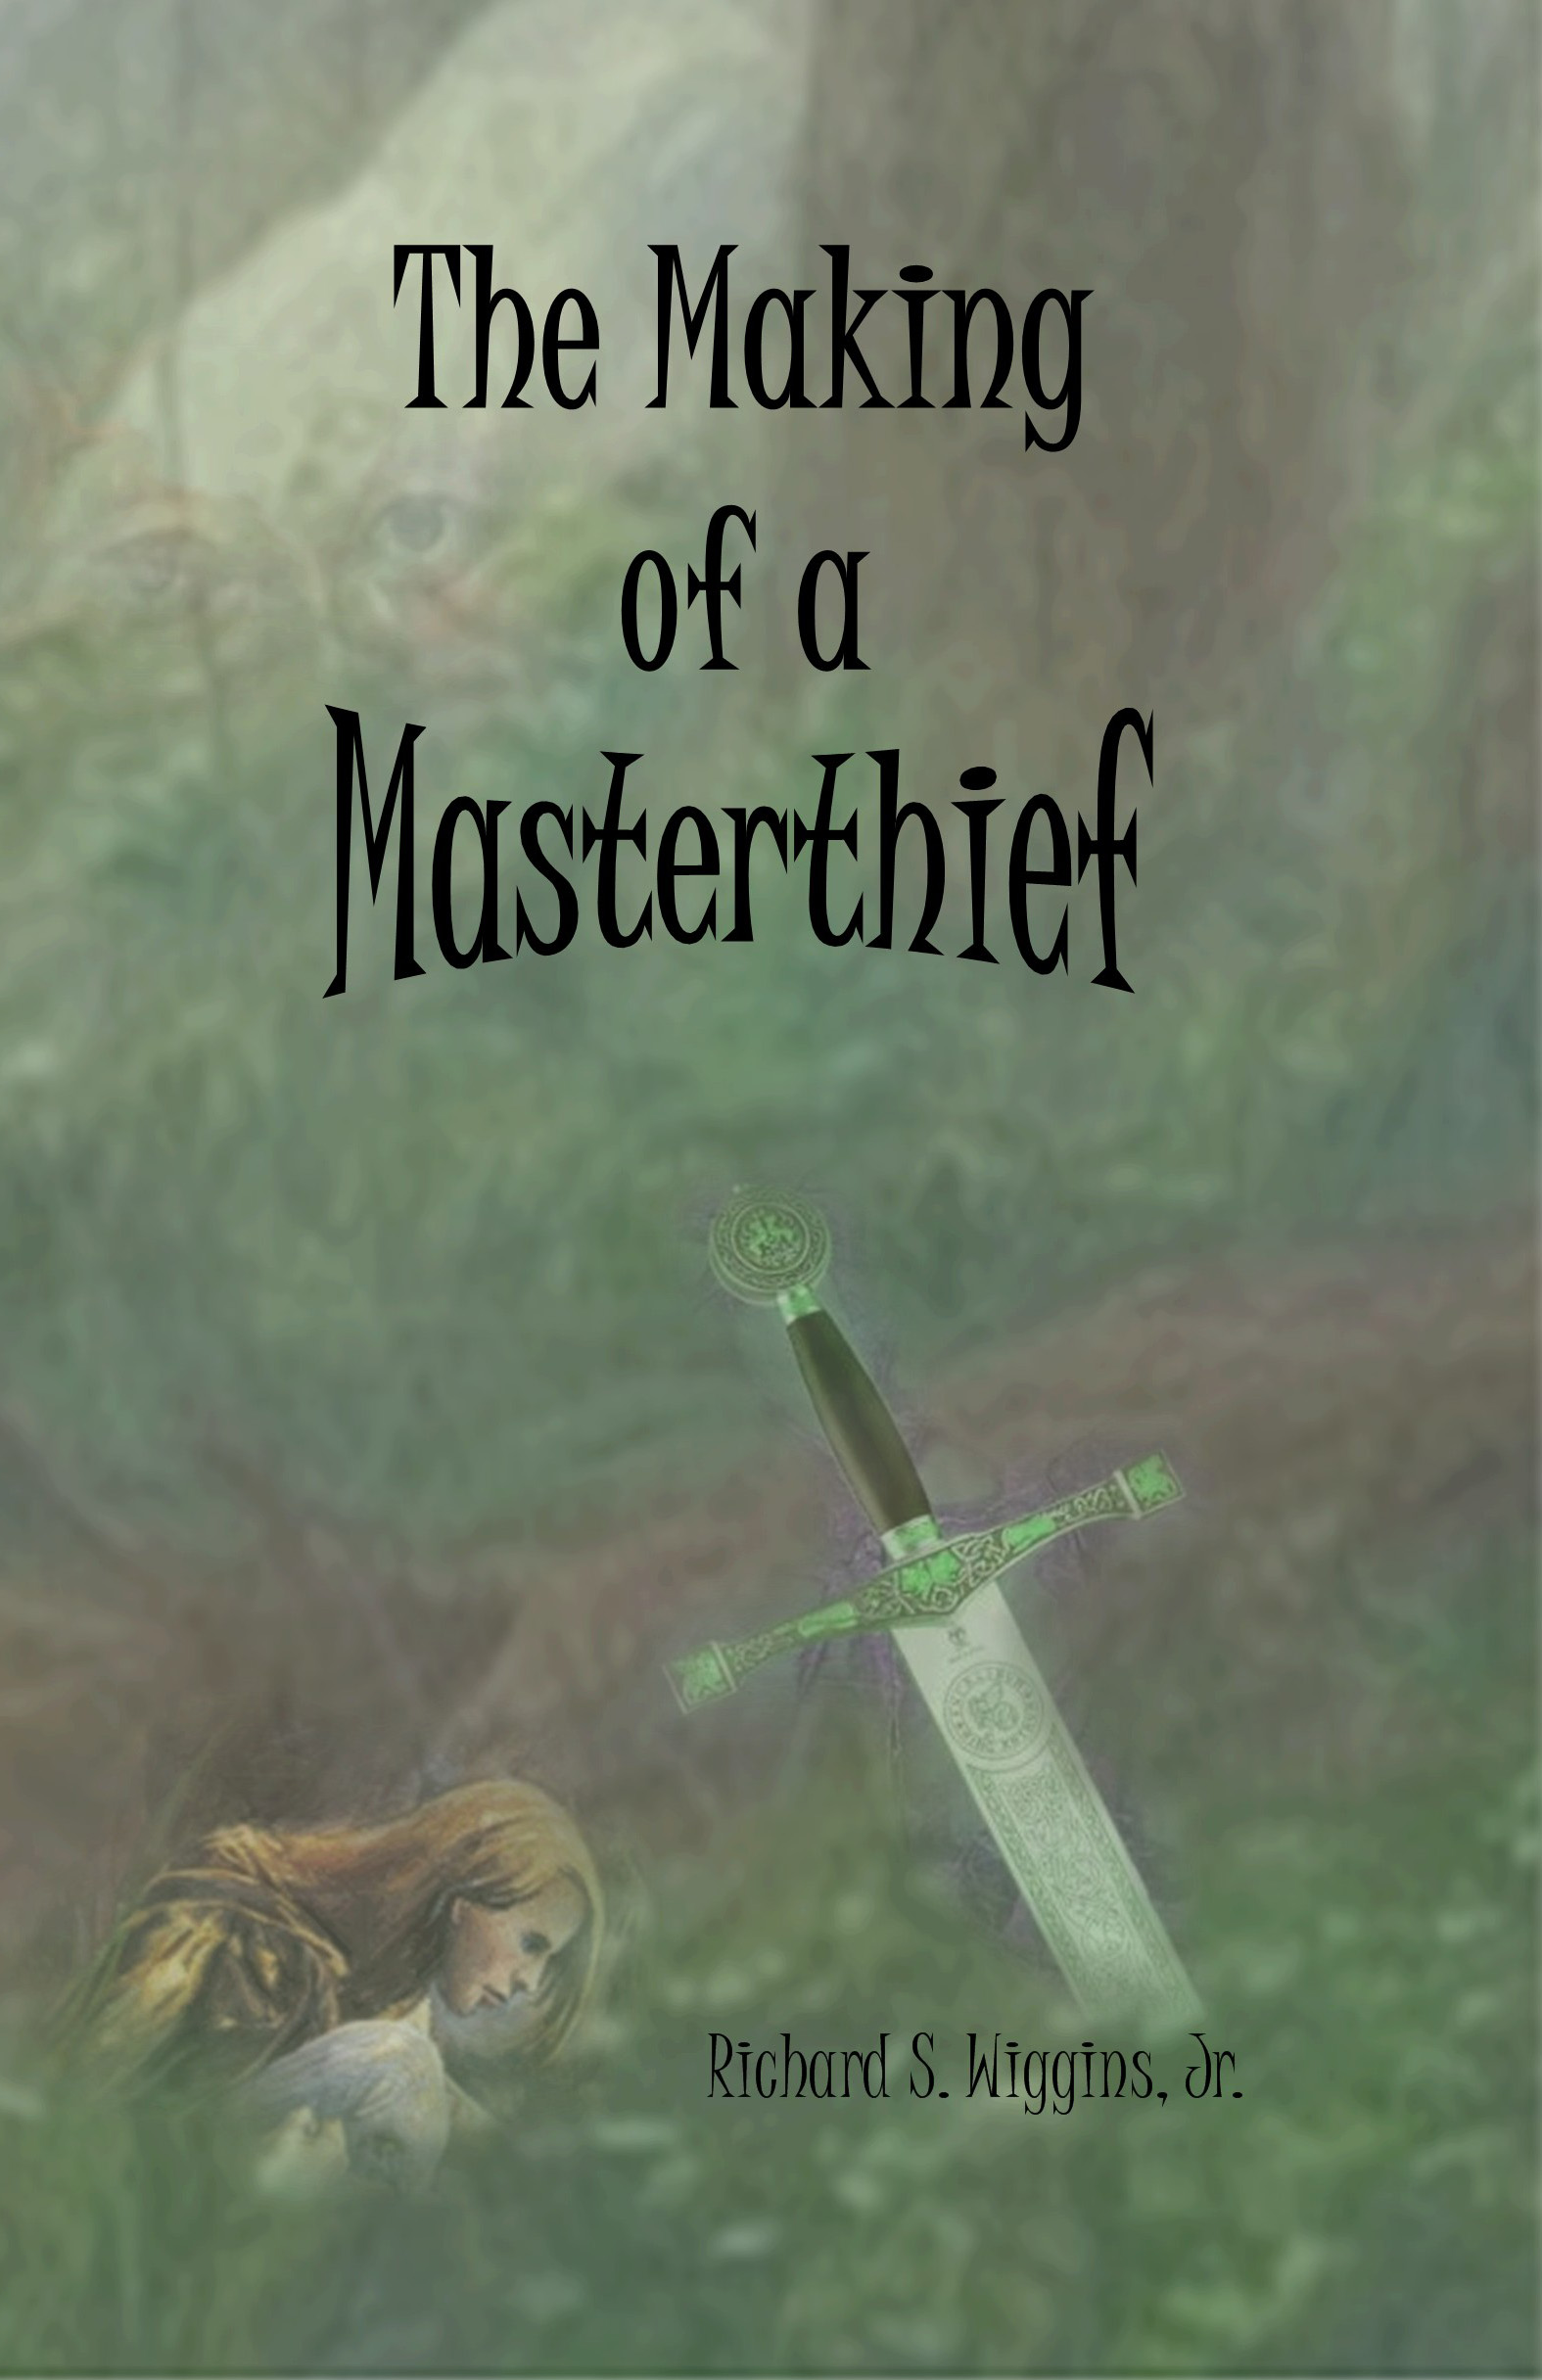 The Making of a Masterthief